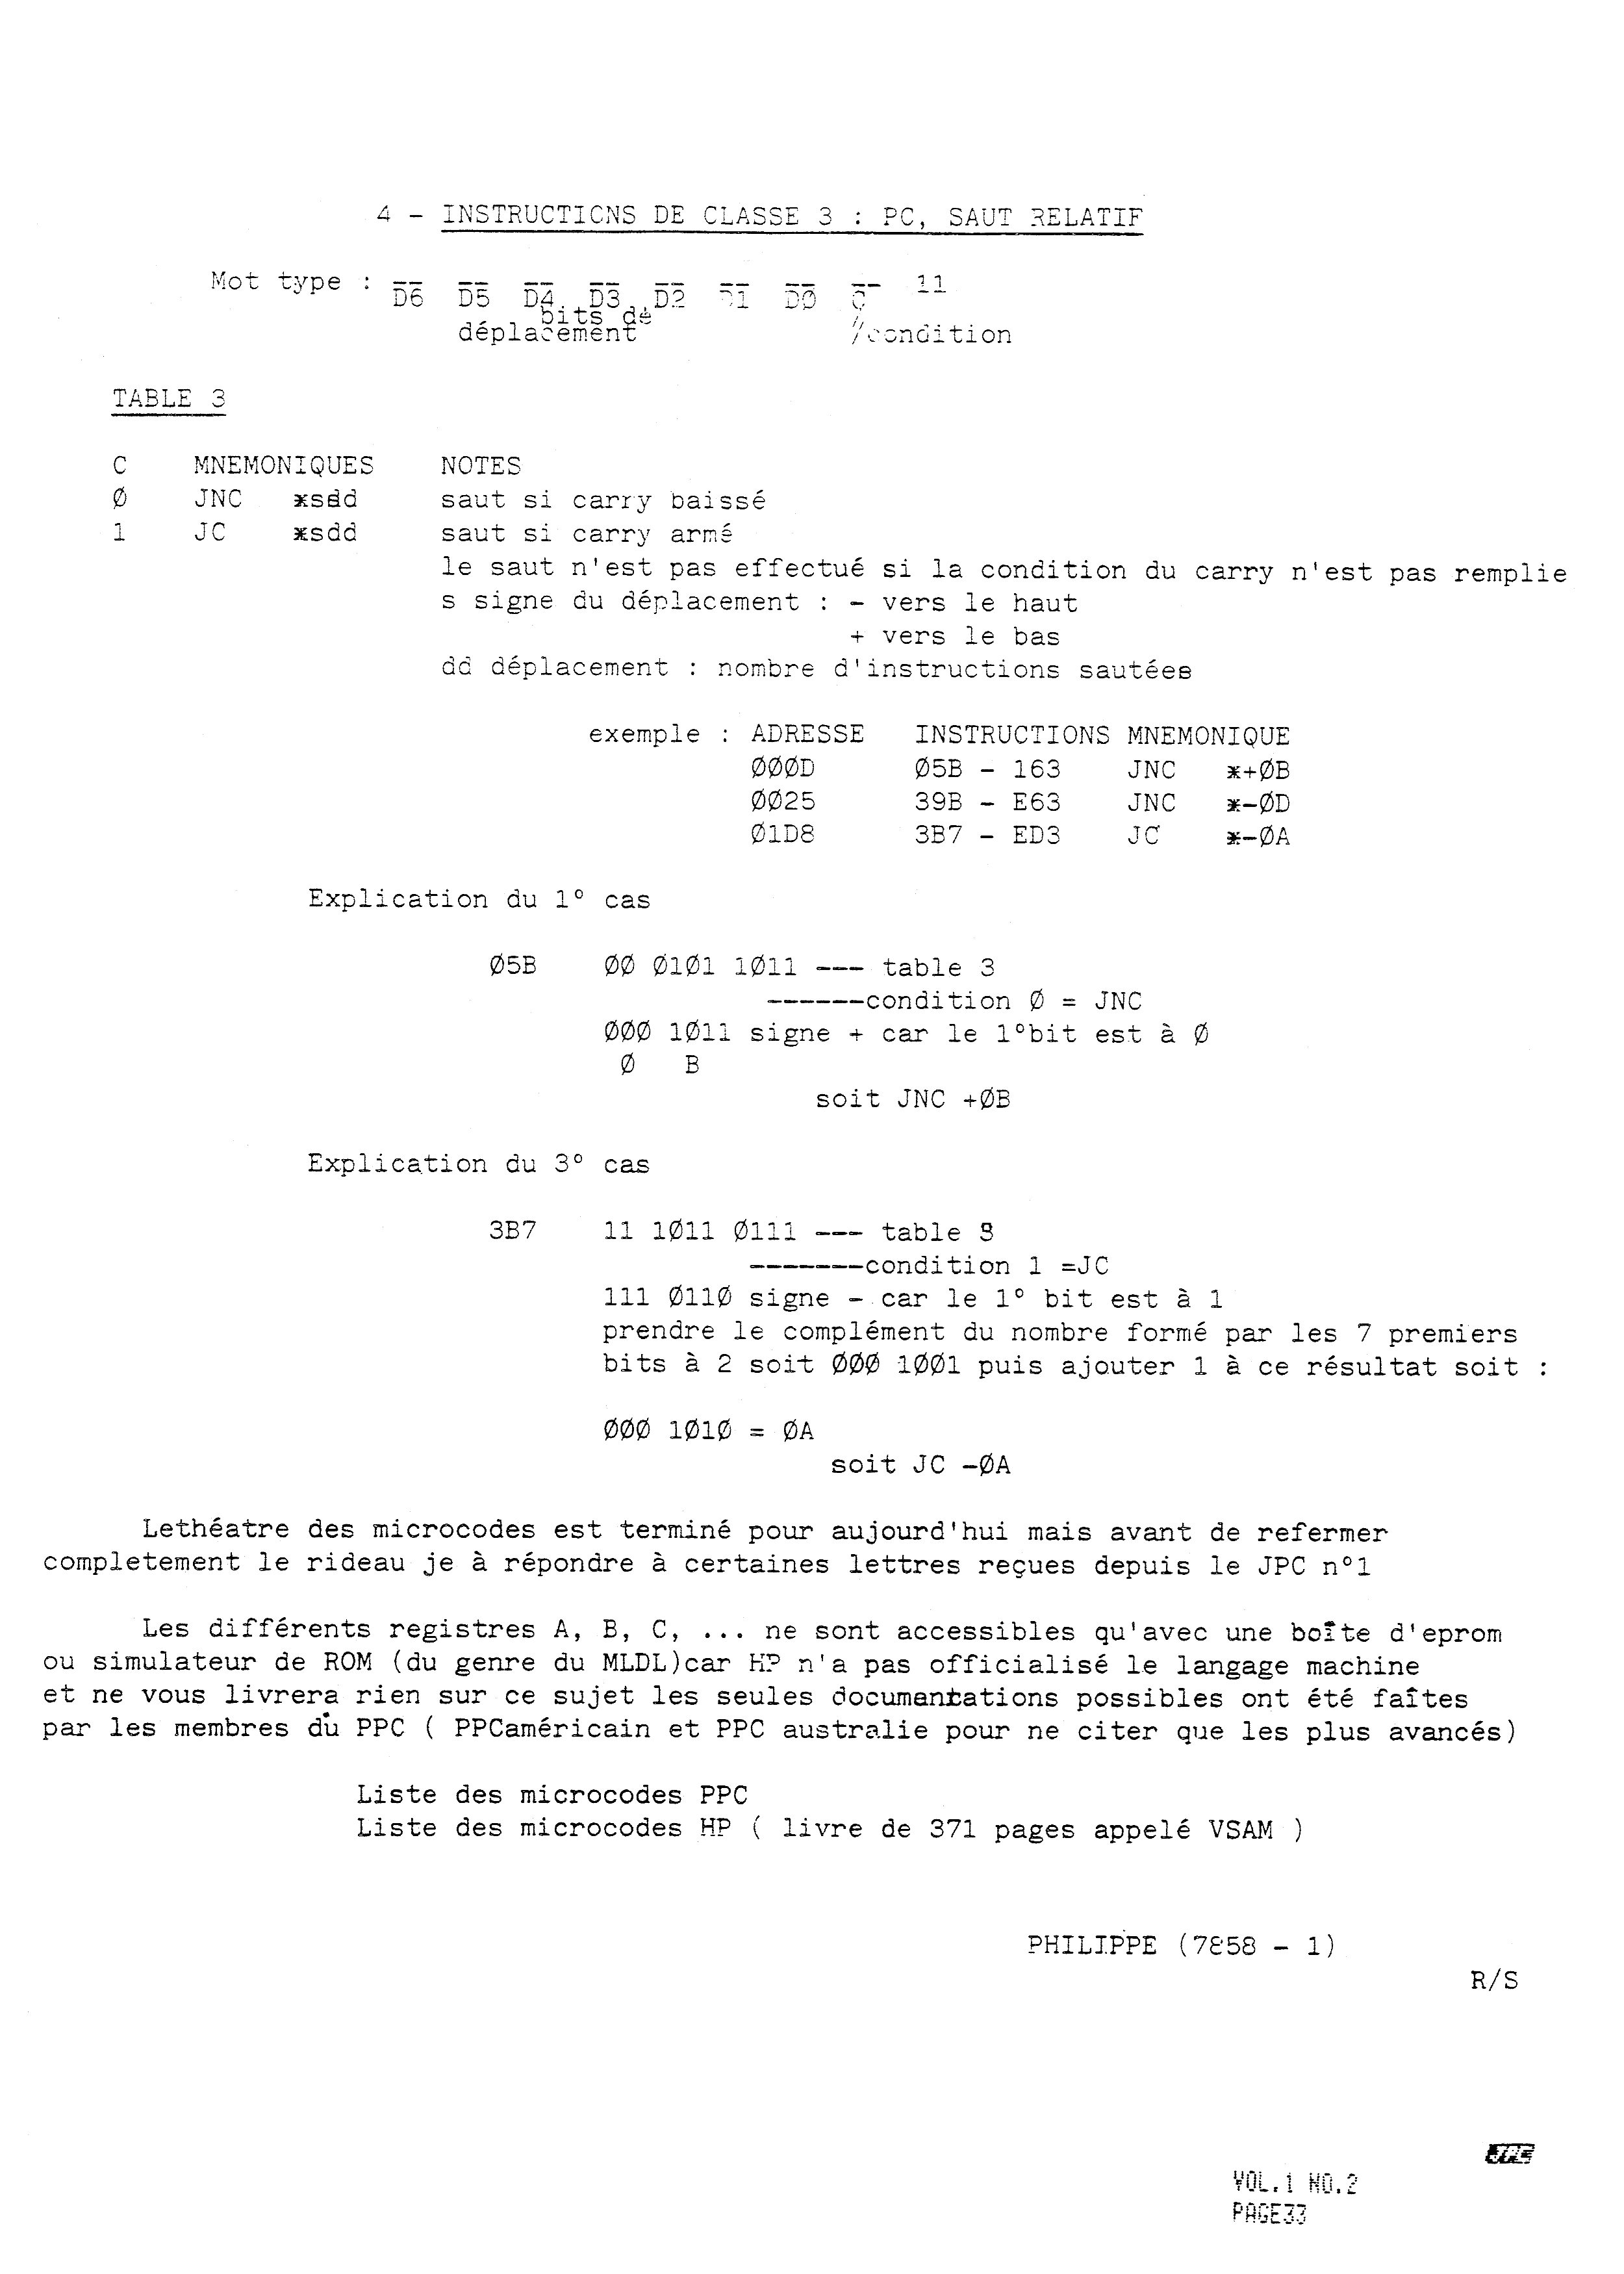 Jp-2-page-33-1000